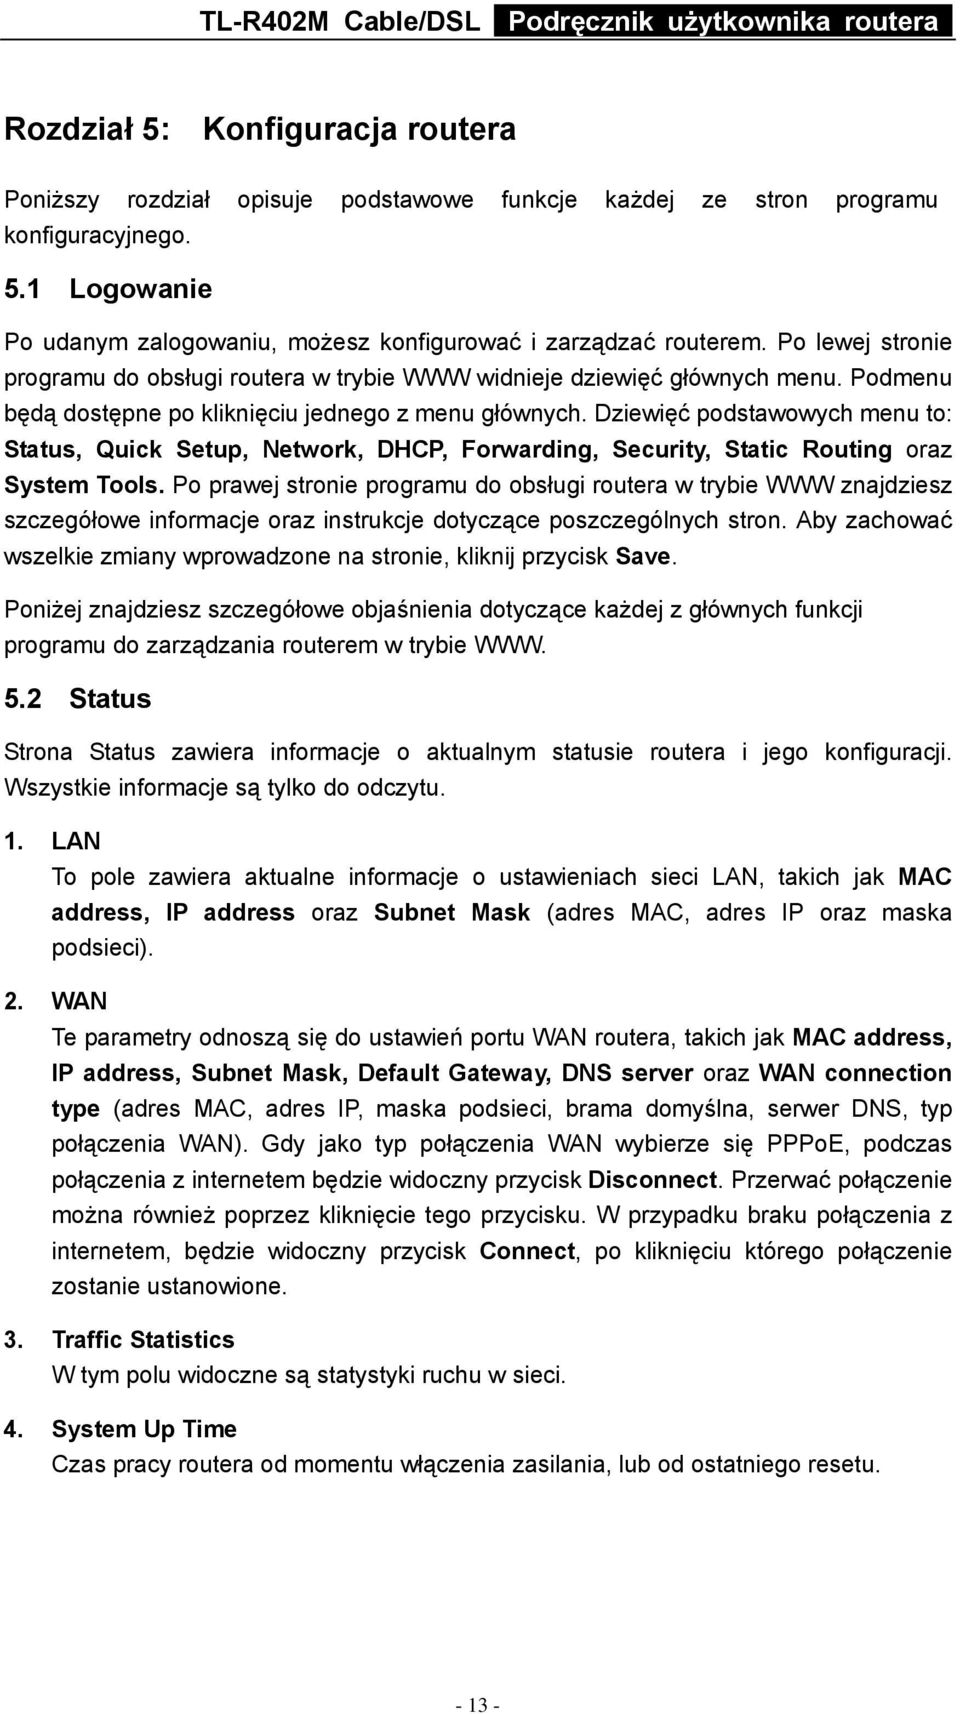 Dziewięć podstawowych menu to: Status, Quick Setup, Network, DHCP, Forwarding, Security, Static Routing oraz System Tools.